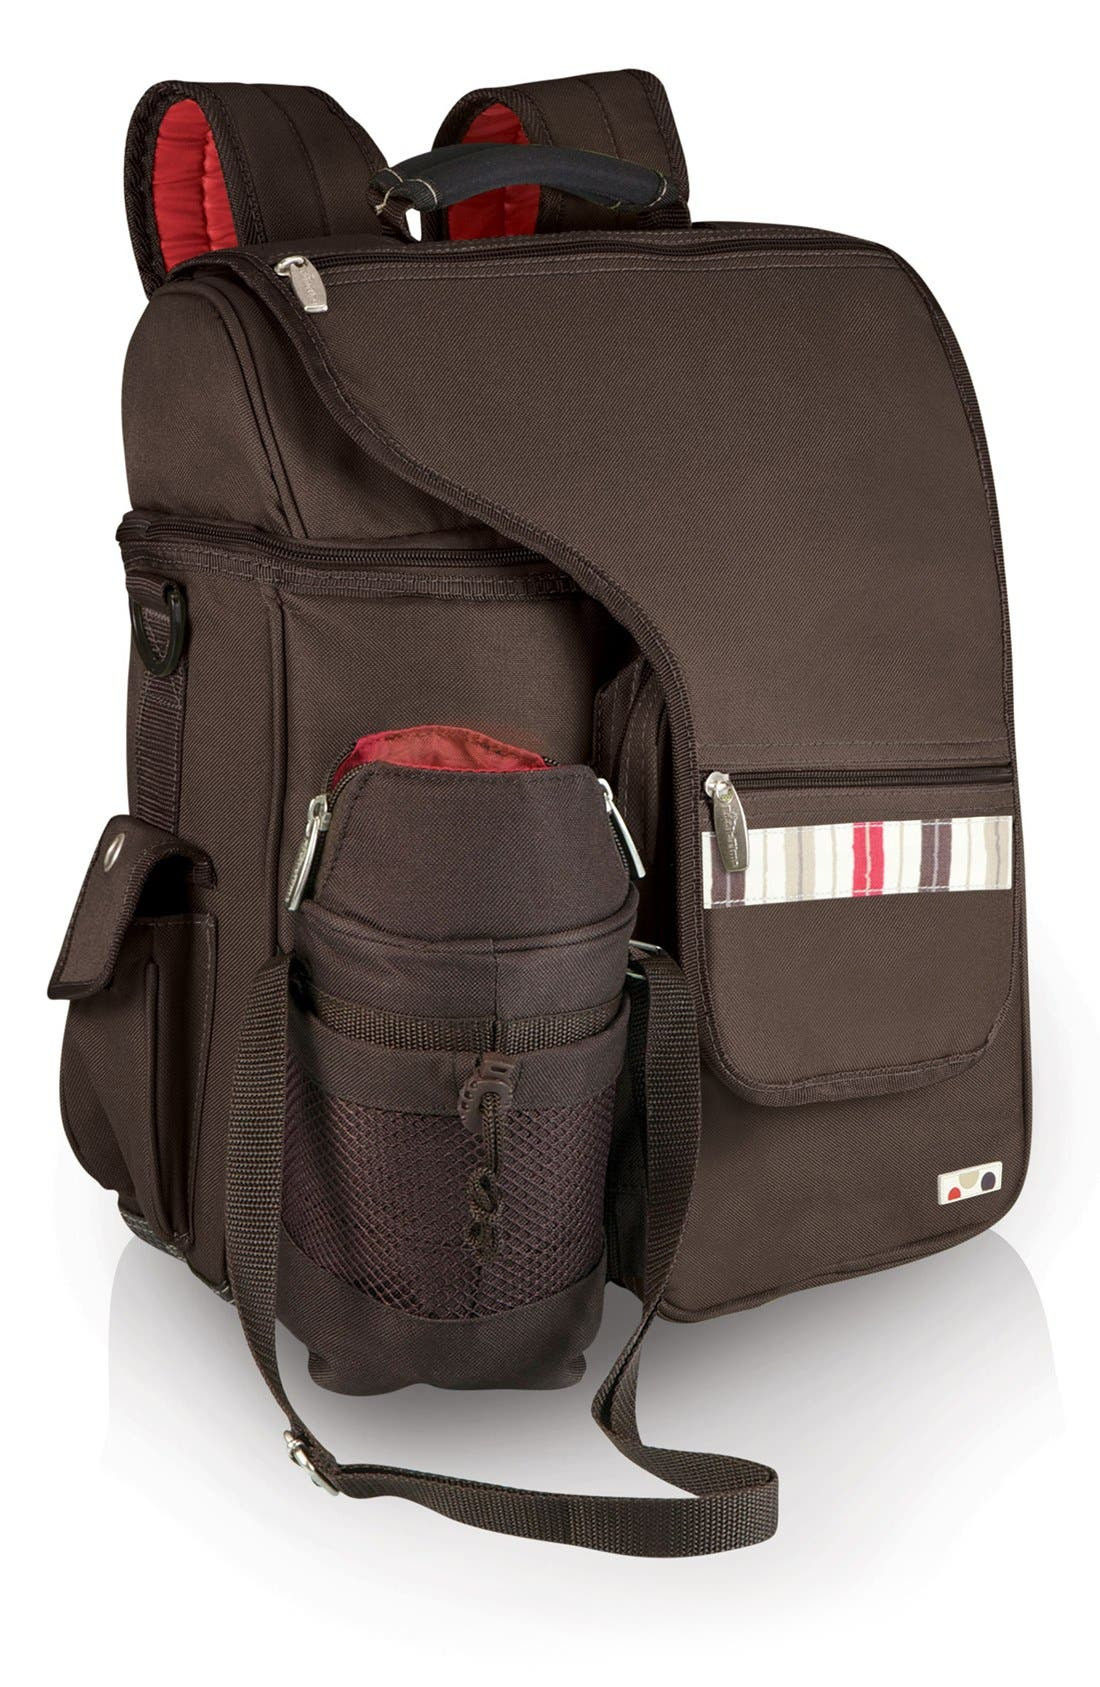 Picnic Time Turismo Insulated Cooler Backpack